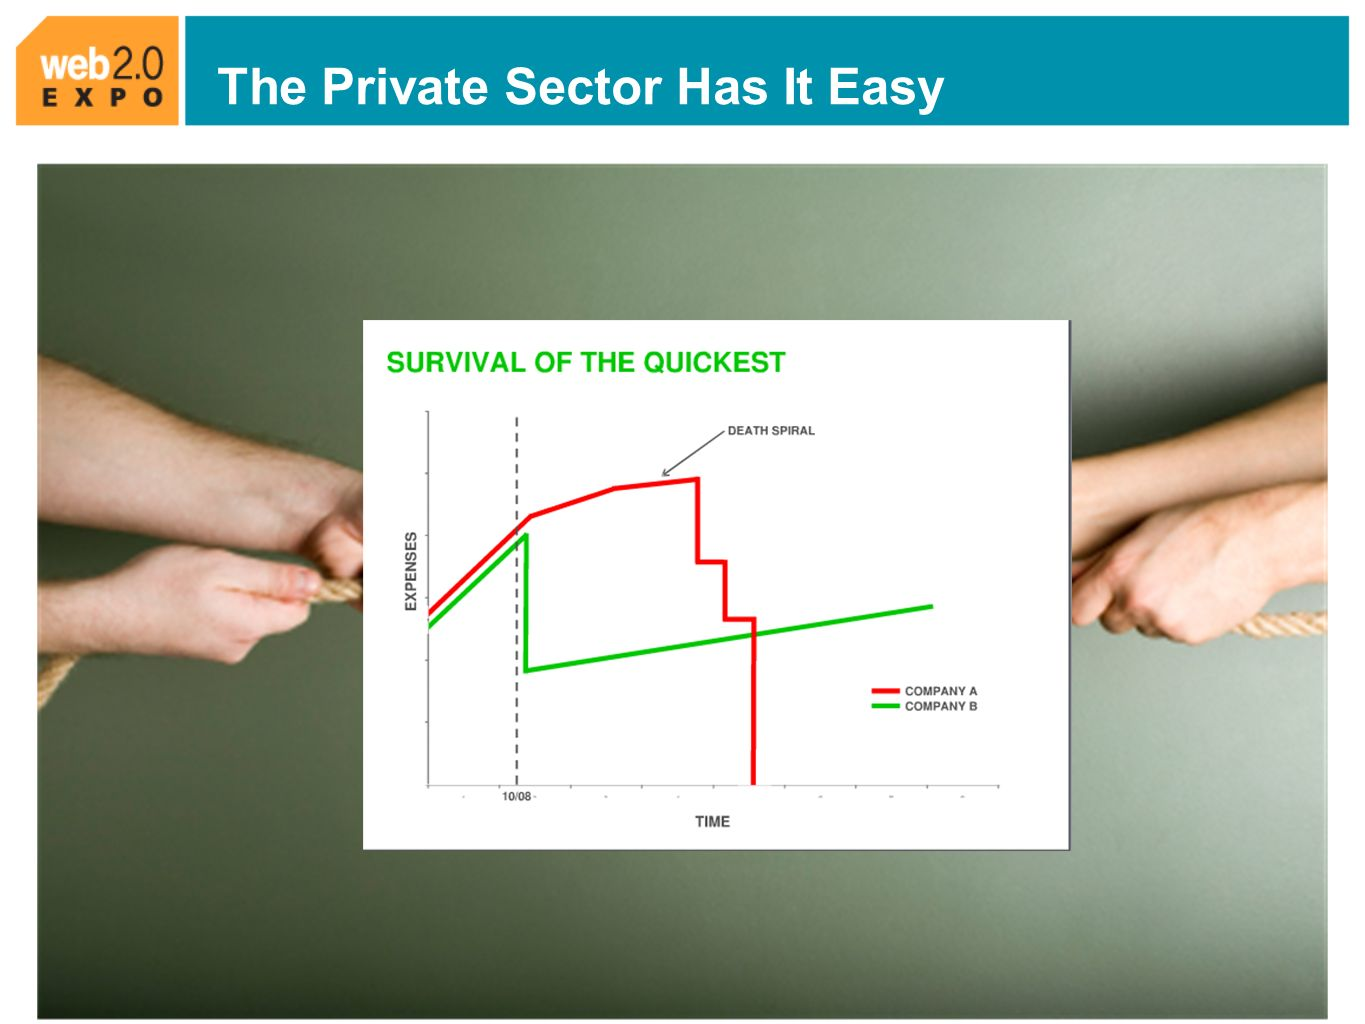 The Private Sector Has It Easy